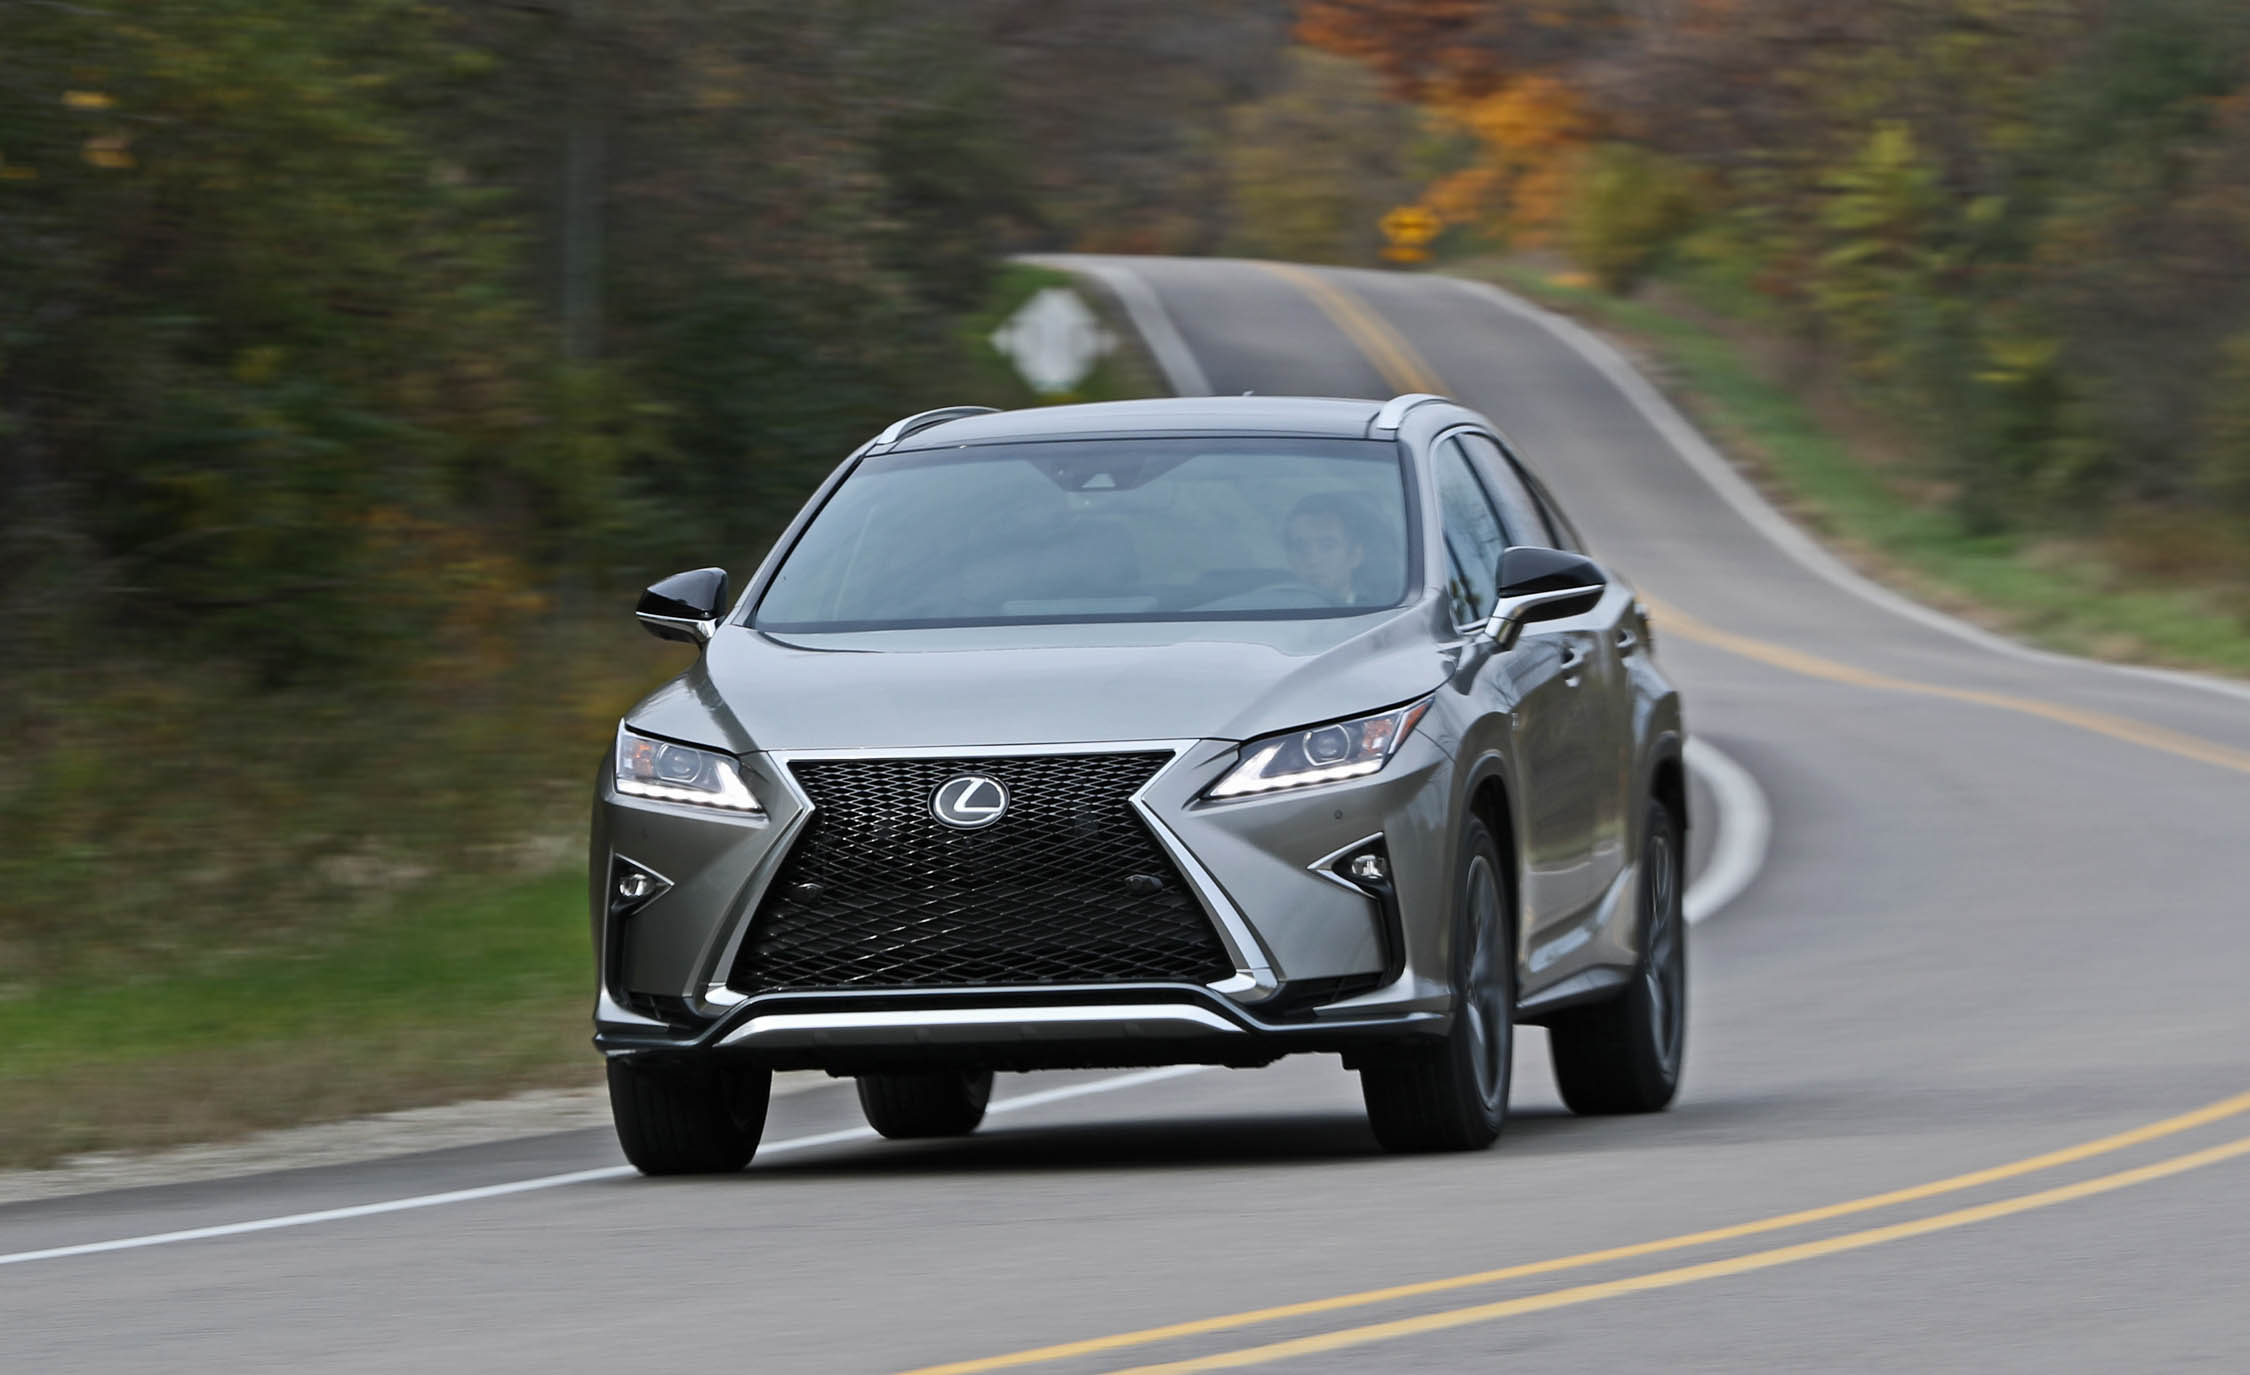 2017 Lexus RX350 F Sport (View 31 of 35)